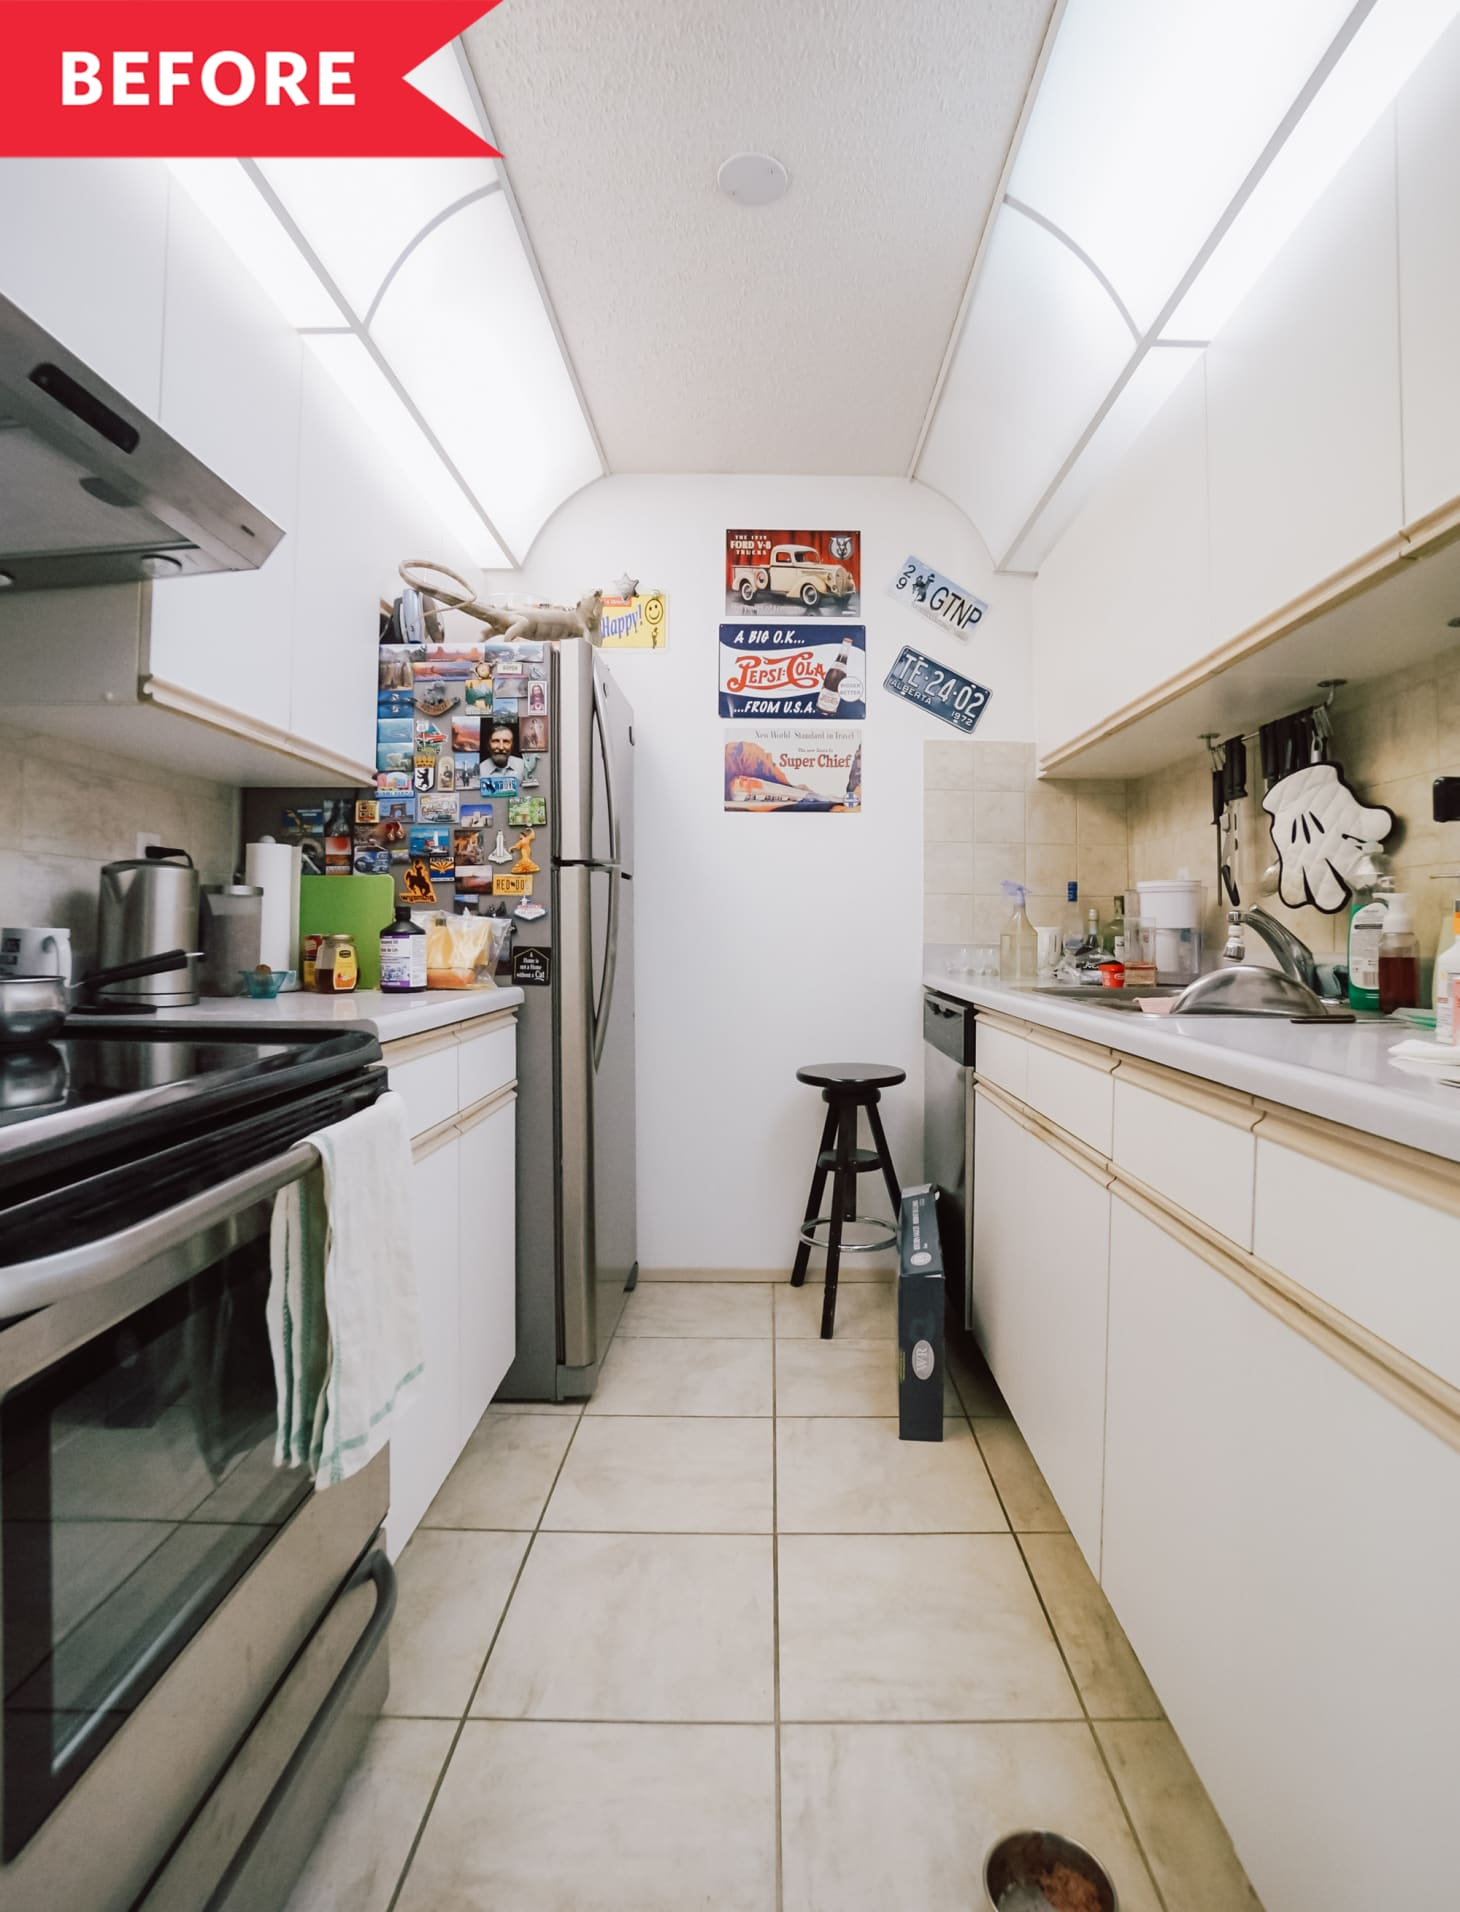 Before And After Modern Remodel Of A Dated Narrow Kitchen